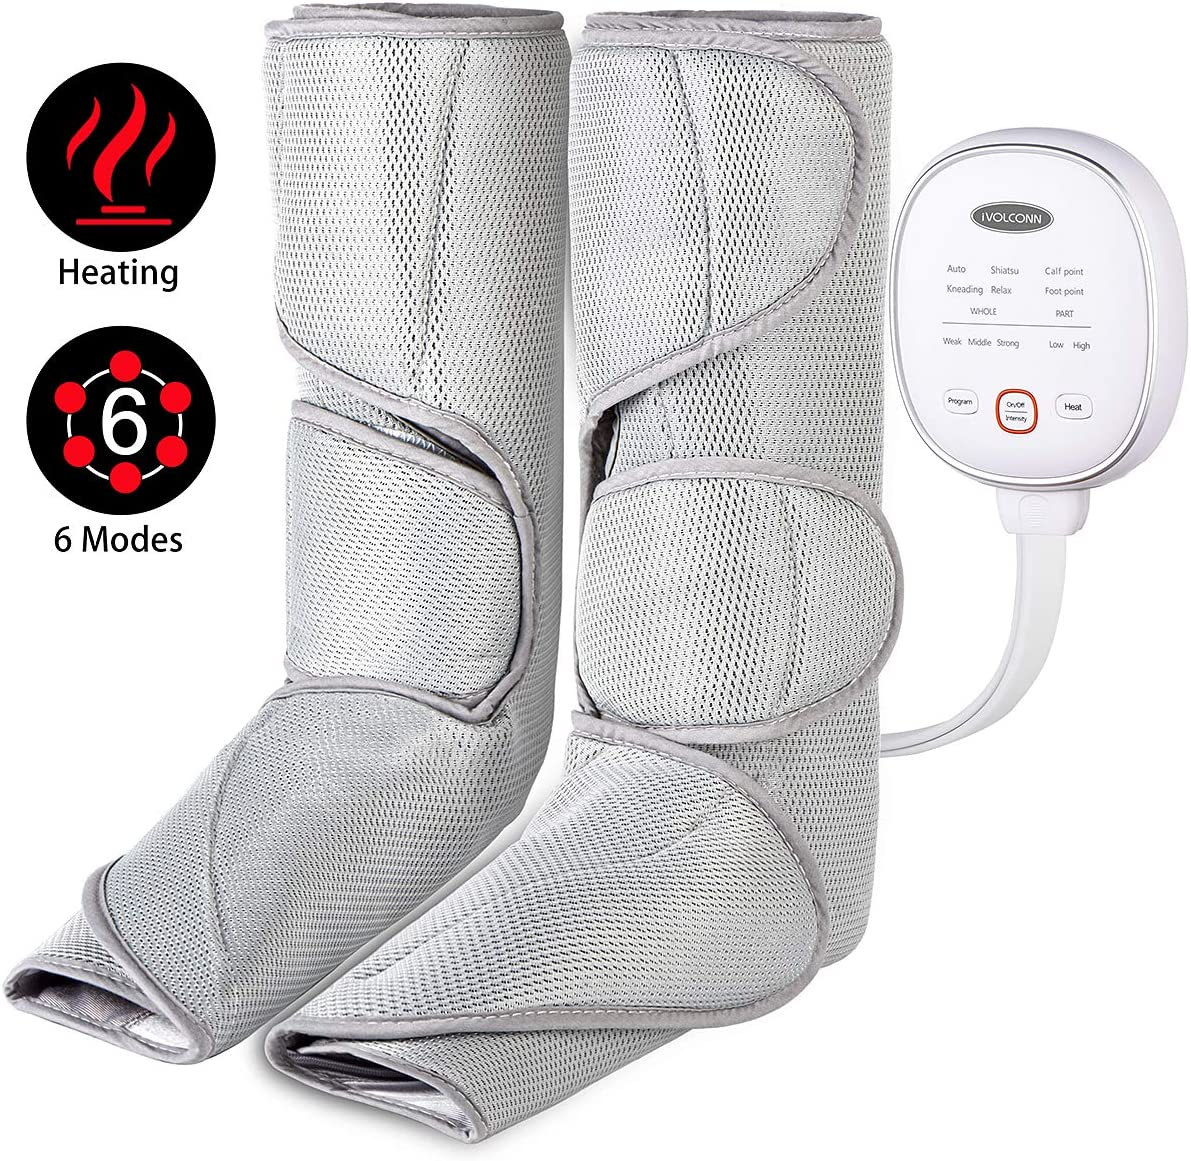 iVOLCONN Leg Massager with Heat for Circulation Air Compression Foot Calf Wraps Helpful for RLS and Edema